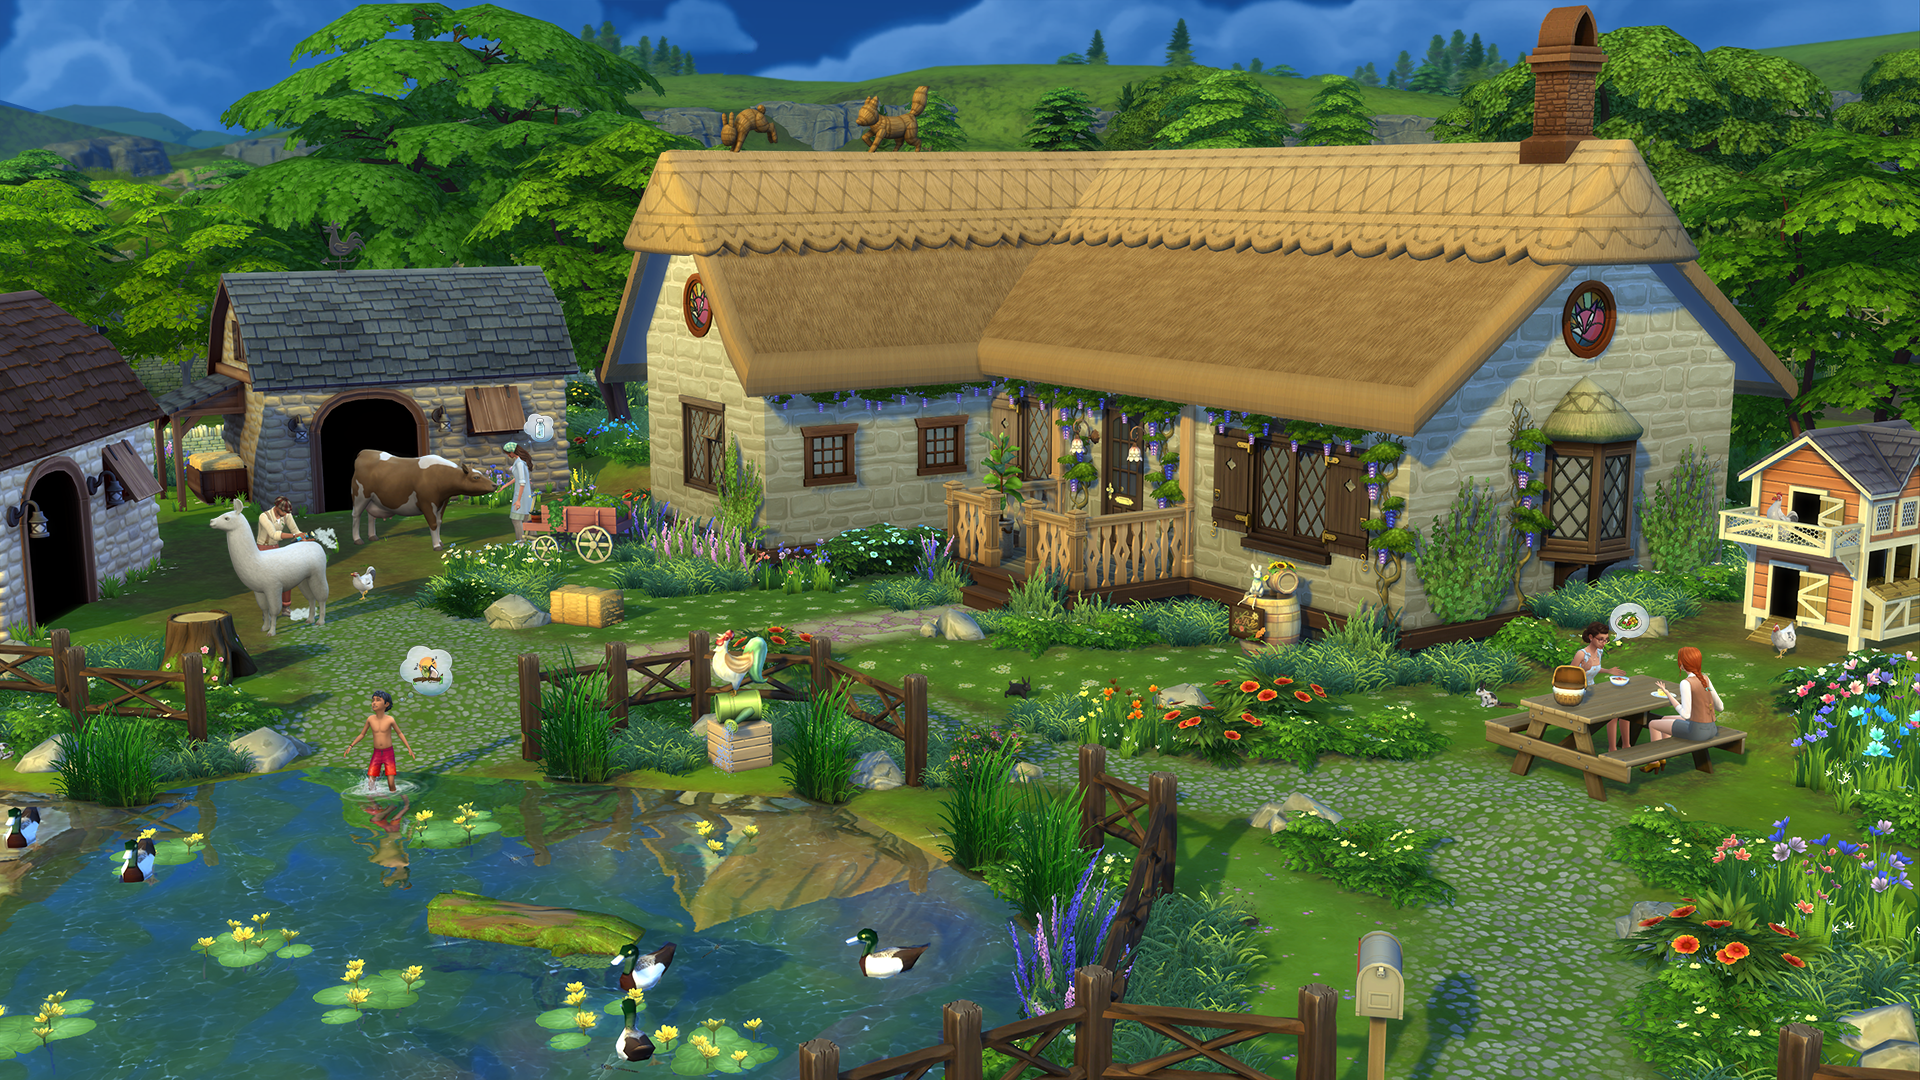 TS4_EP11_OFFICIAL_SCREENS_01_003_1080